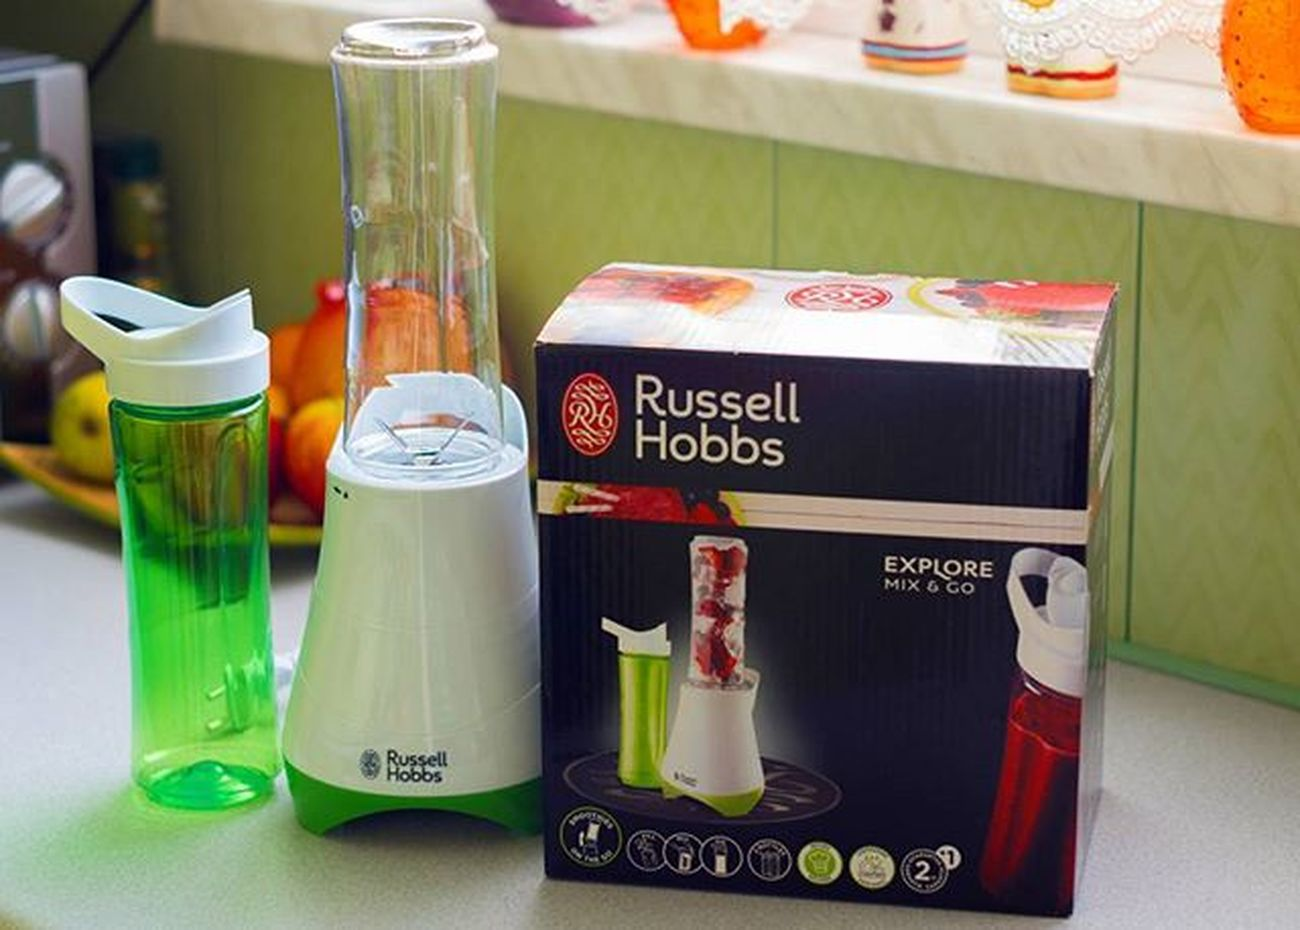 Będą koktajle!Testuje☺ Nowość New Russell Hobbs Russellhobbs Blender Smoothie Koktajl Shake Coctail Shaker Kitchen Kuchnia Testuje Owoce Fruits Warzywa Vegetables Home Homesweethome Tesco  Zakupy Shopping Healthy Drink instadrinkpolishgirllikeforlikel4lf4f